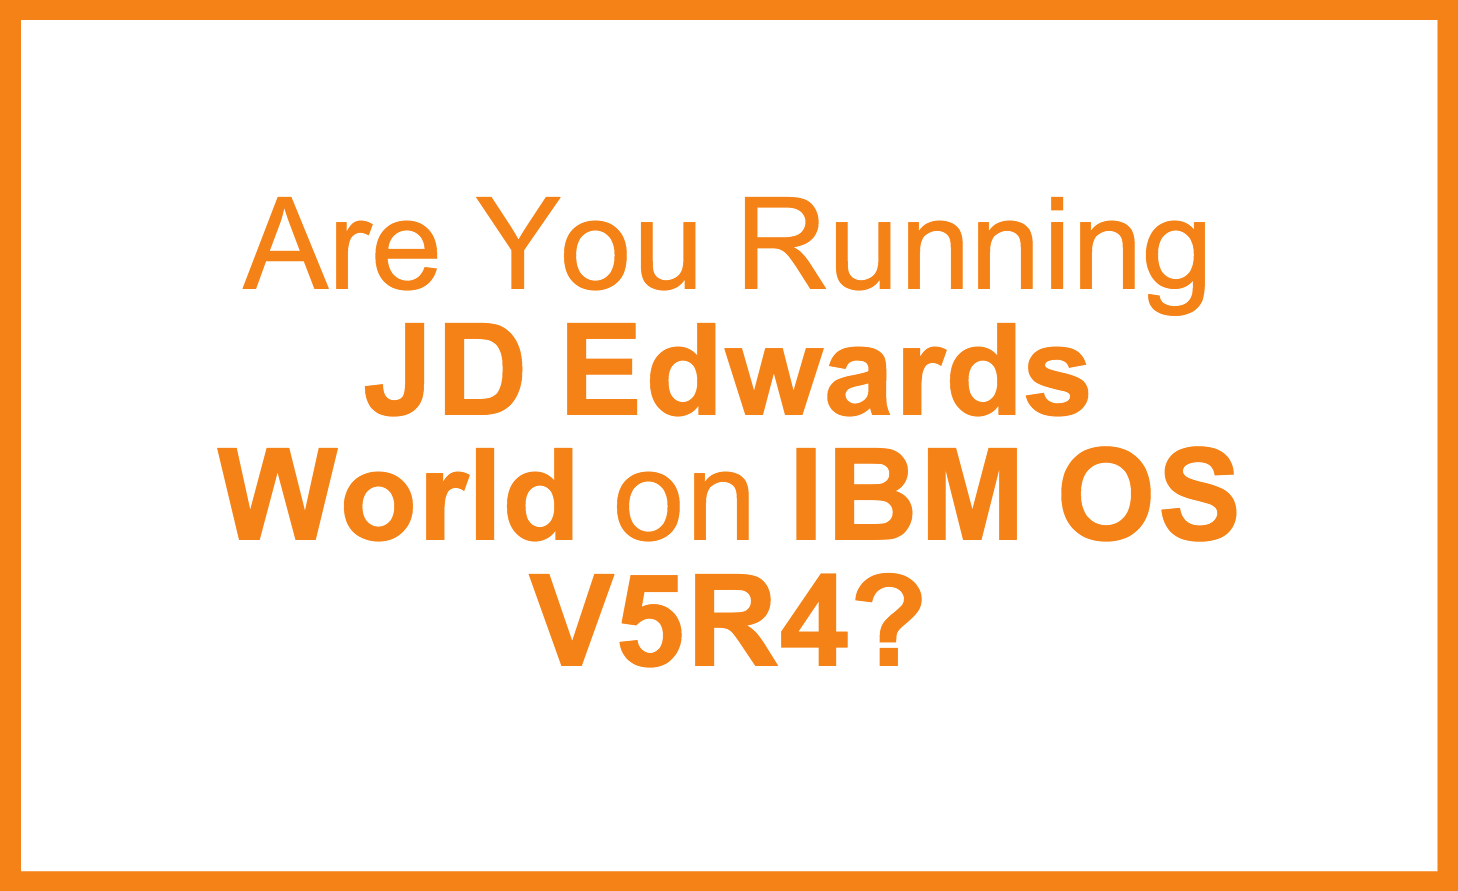 JDE_World_on_IBM_V5R4